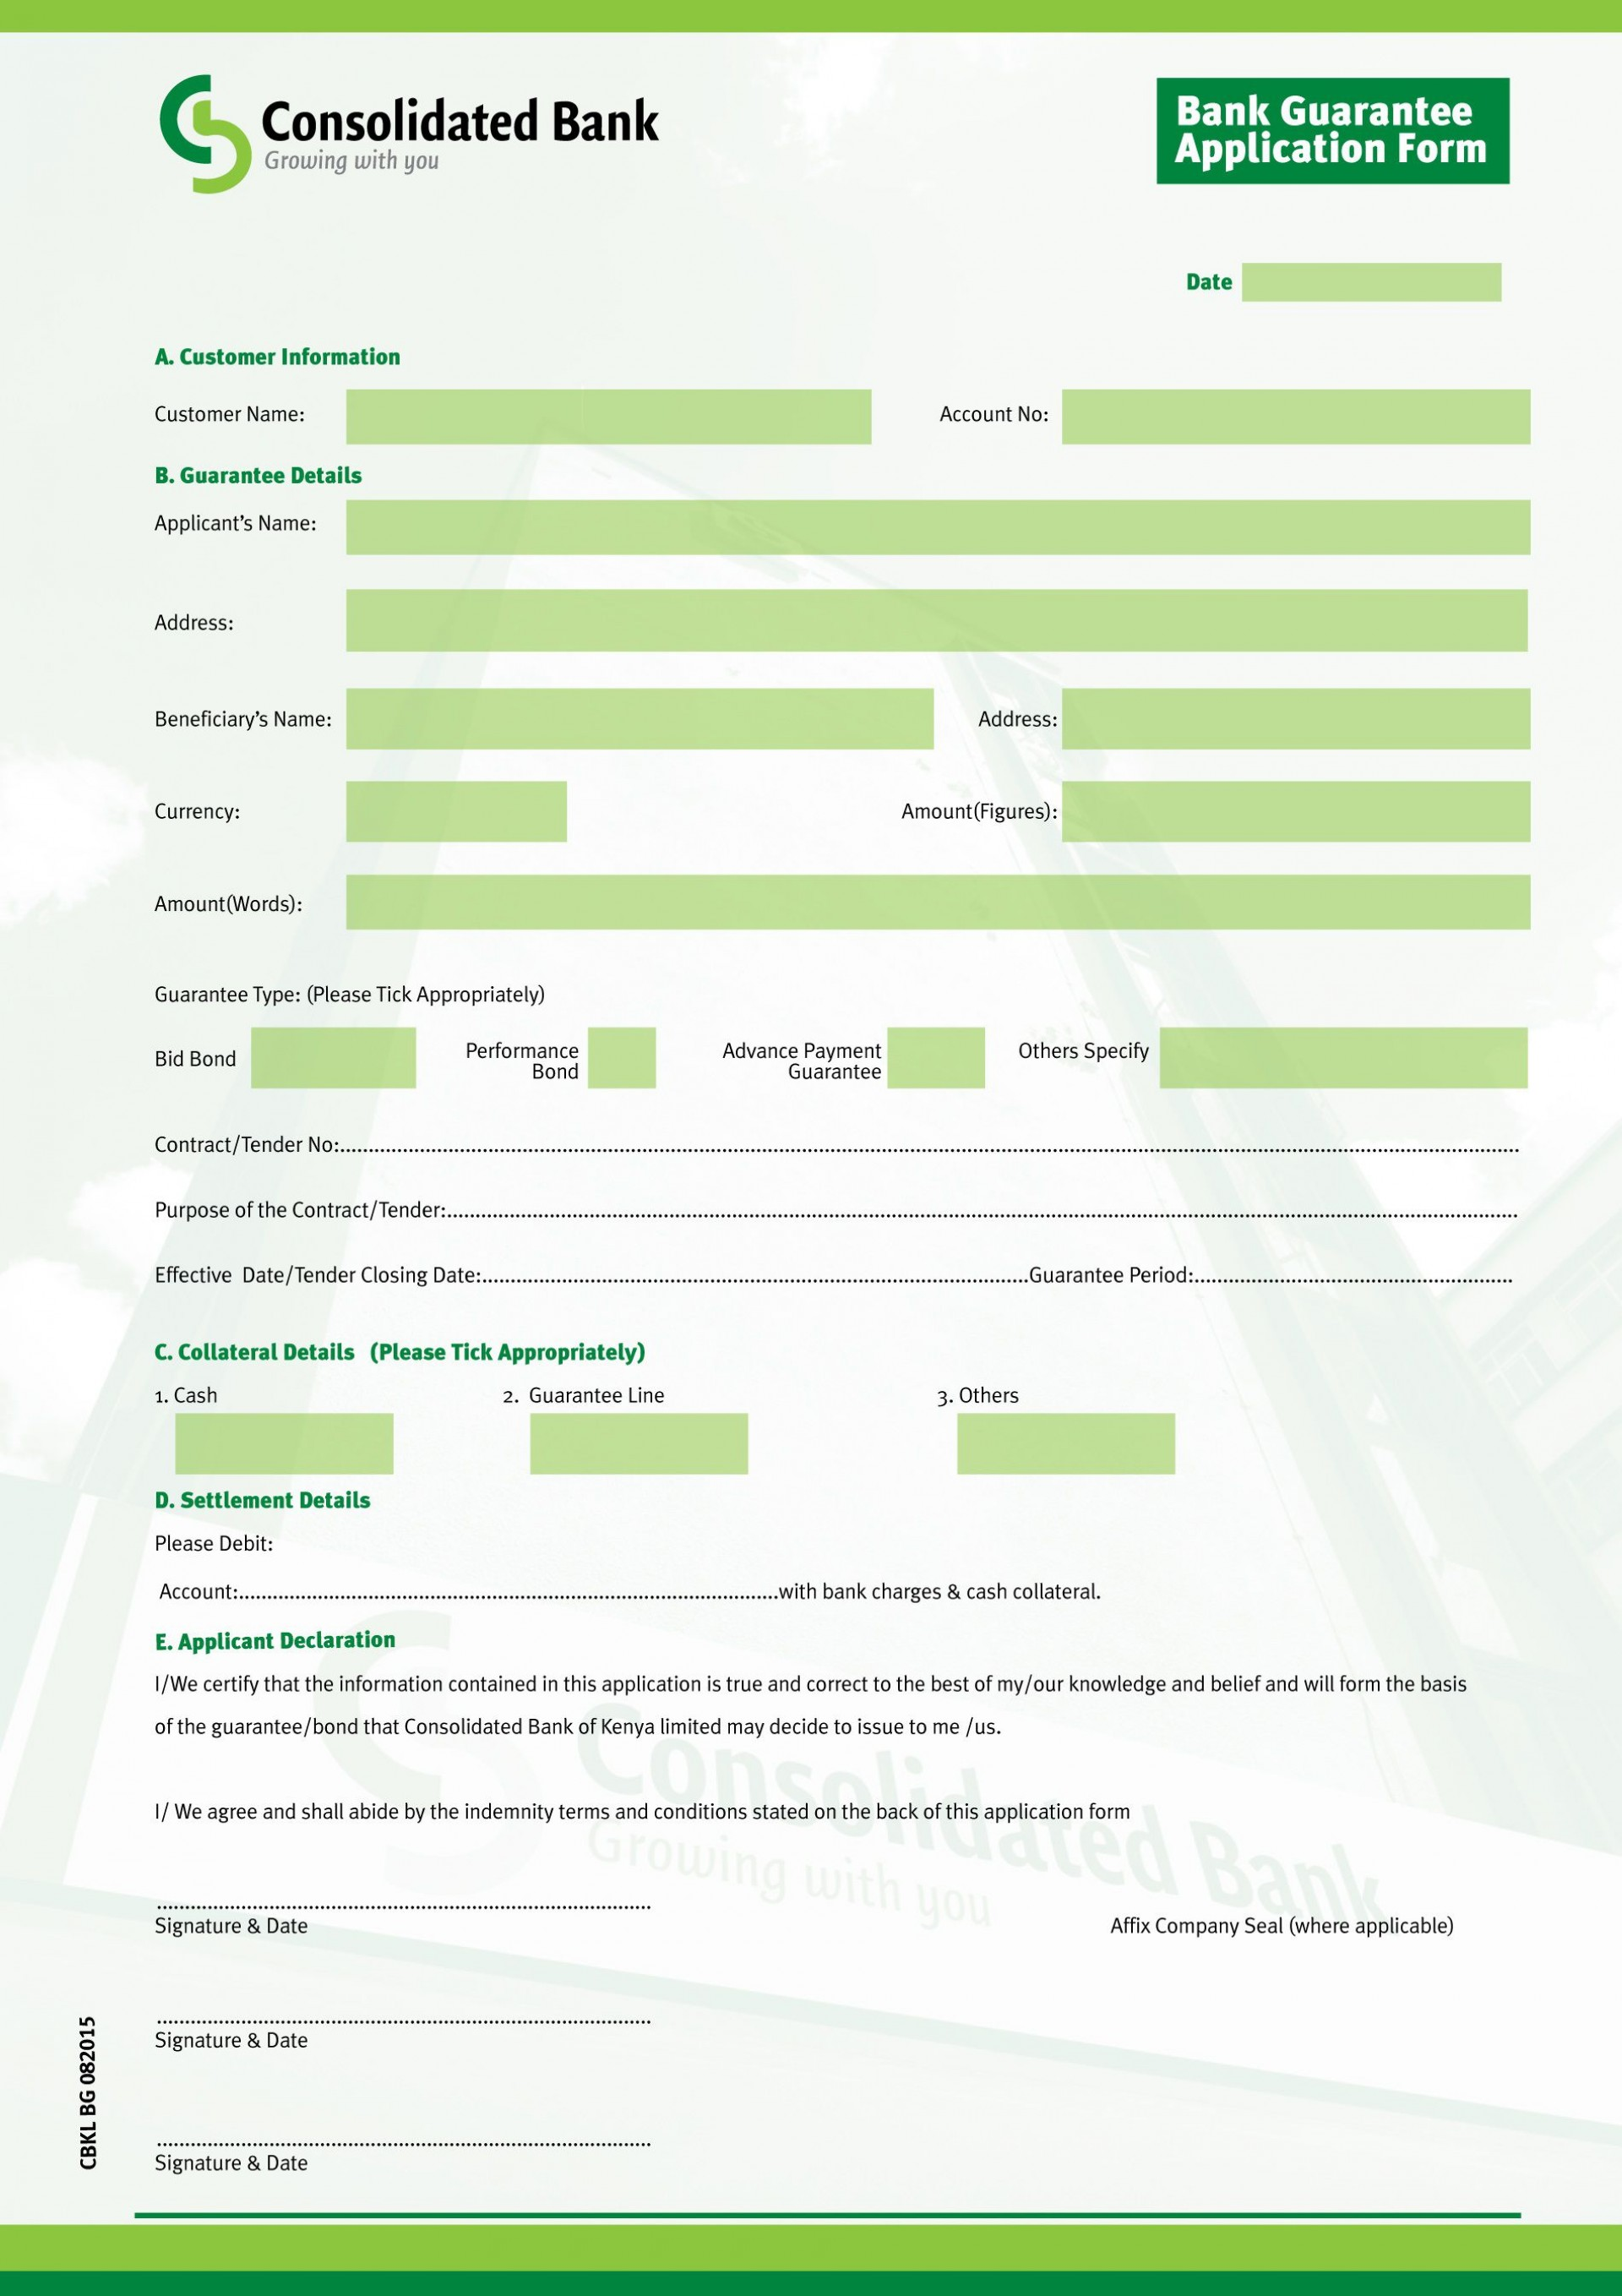 001 Magnificent New Customer Account Opening Form Template High Resolution  Word Uk Excel1920